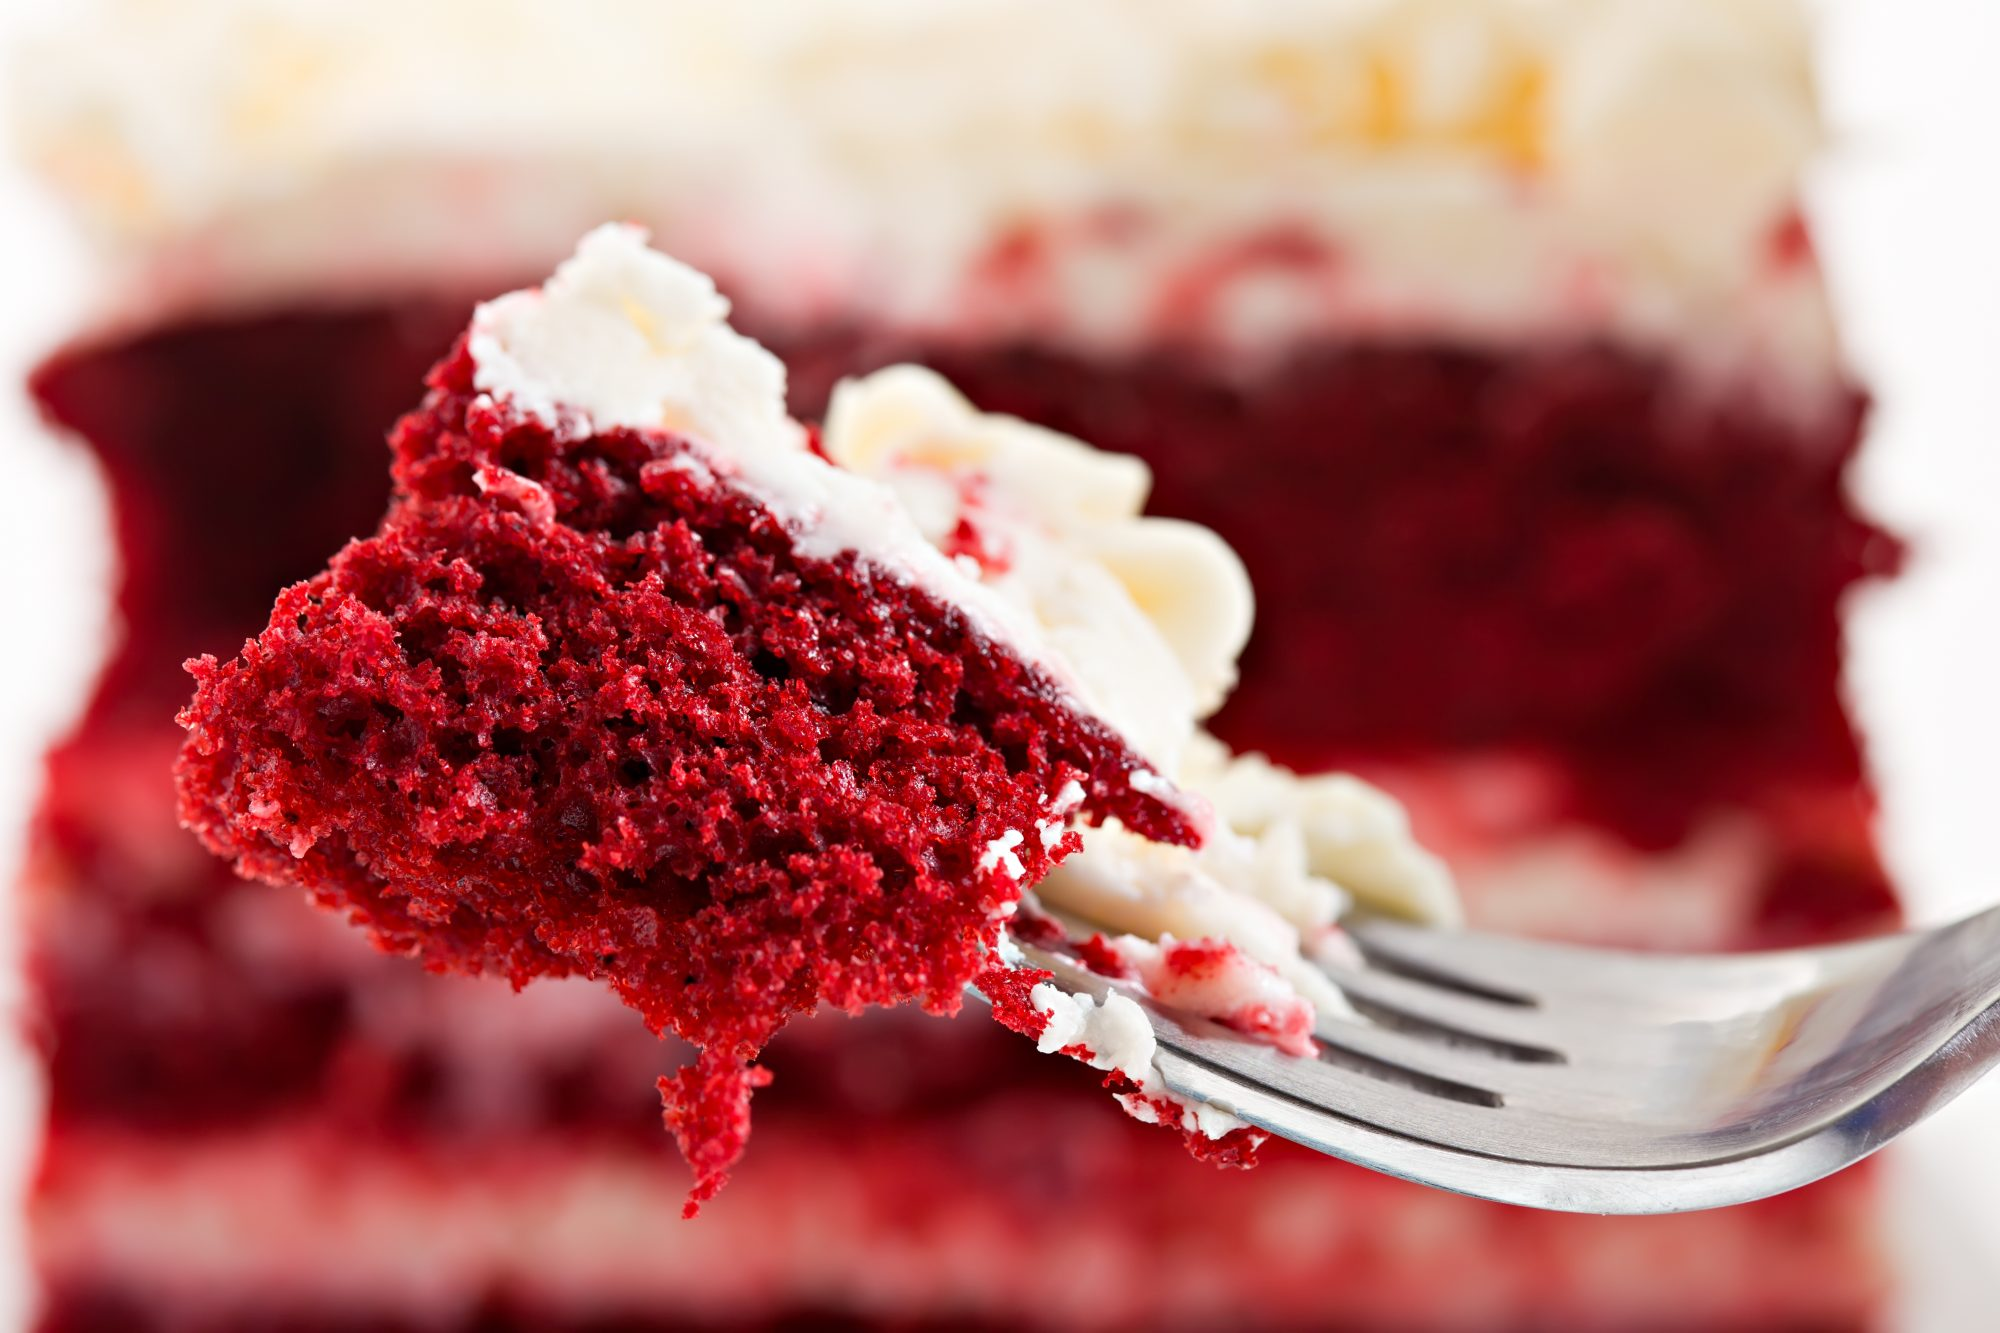 Red Velvet Cake Getty 10/1/19